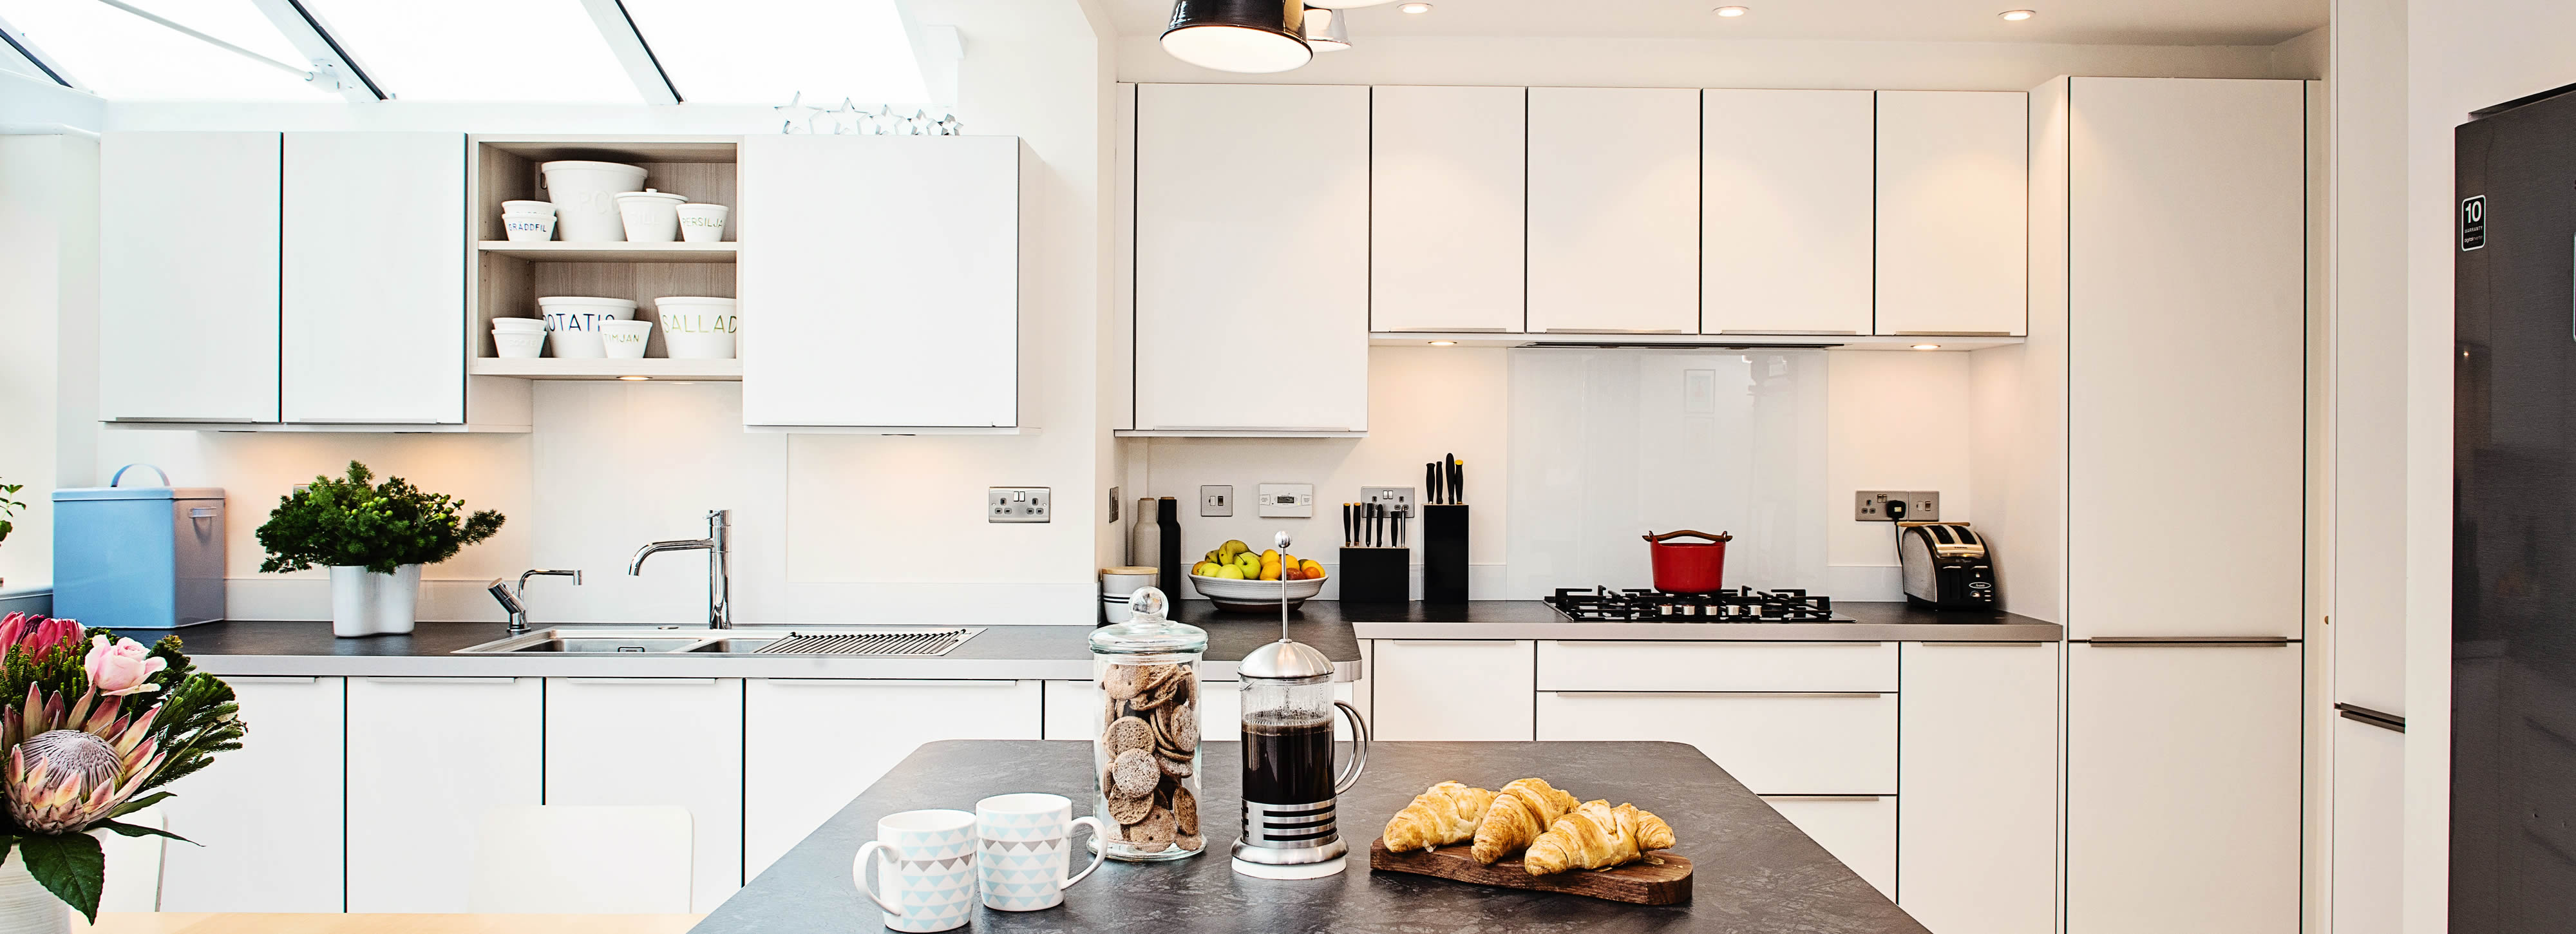 kitchens guide steel style rooms design kitchen contemporary white a and for hgtv